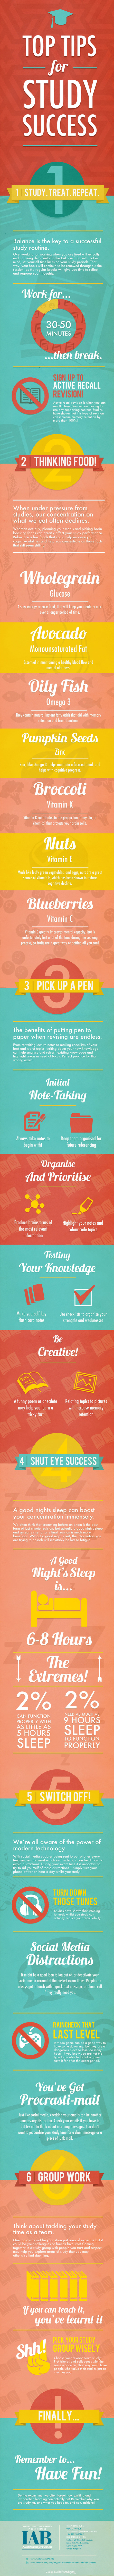 [INFOGRAPHIC] Top Tips for Study Success